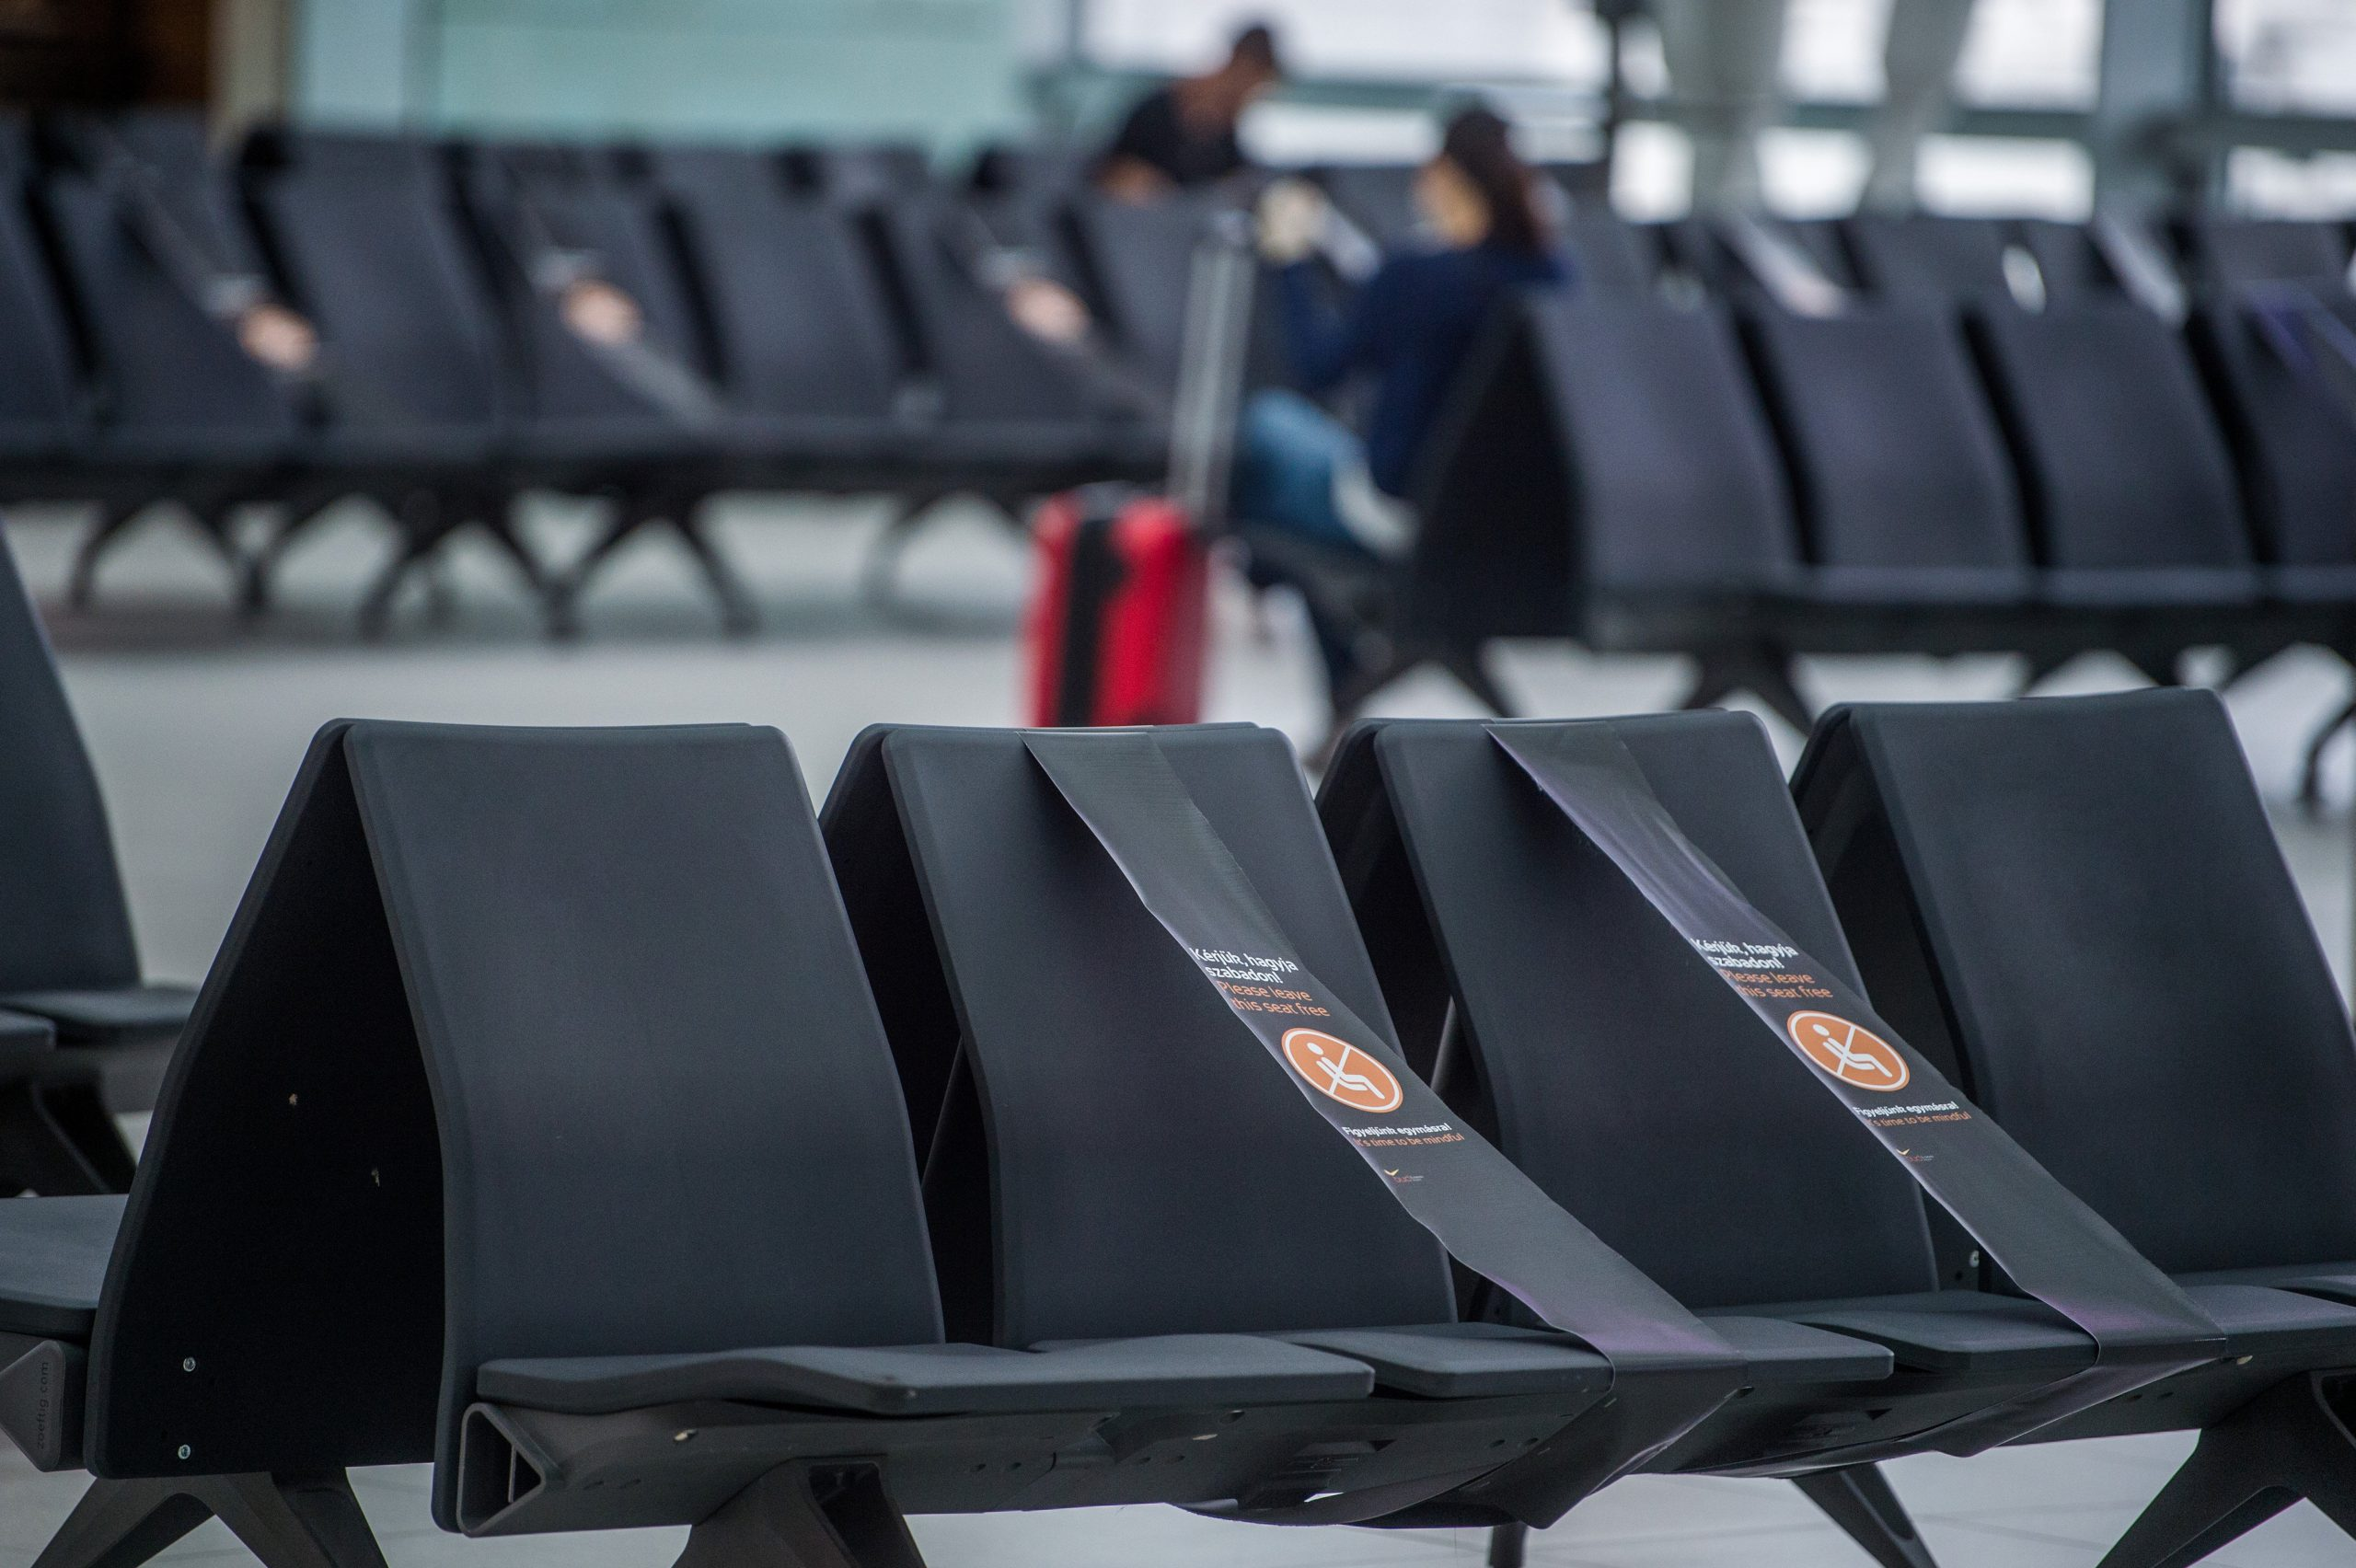 Budapest Airport Projects 80-90% Decline in Passenger Numbers in Autumn, Winter post's picture